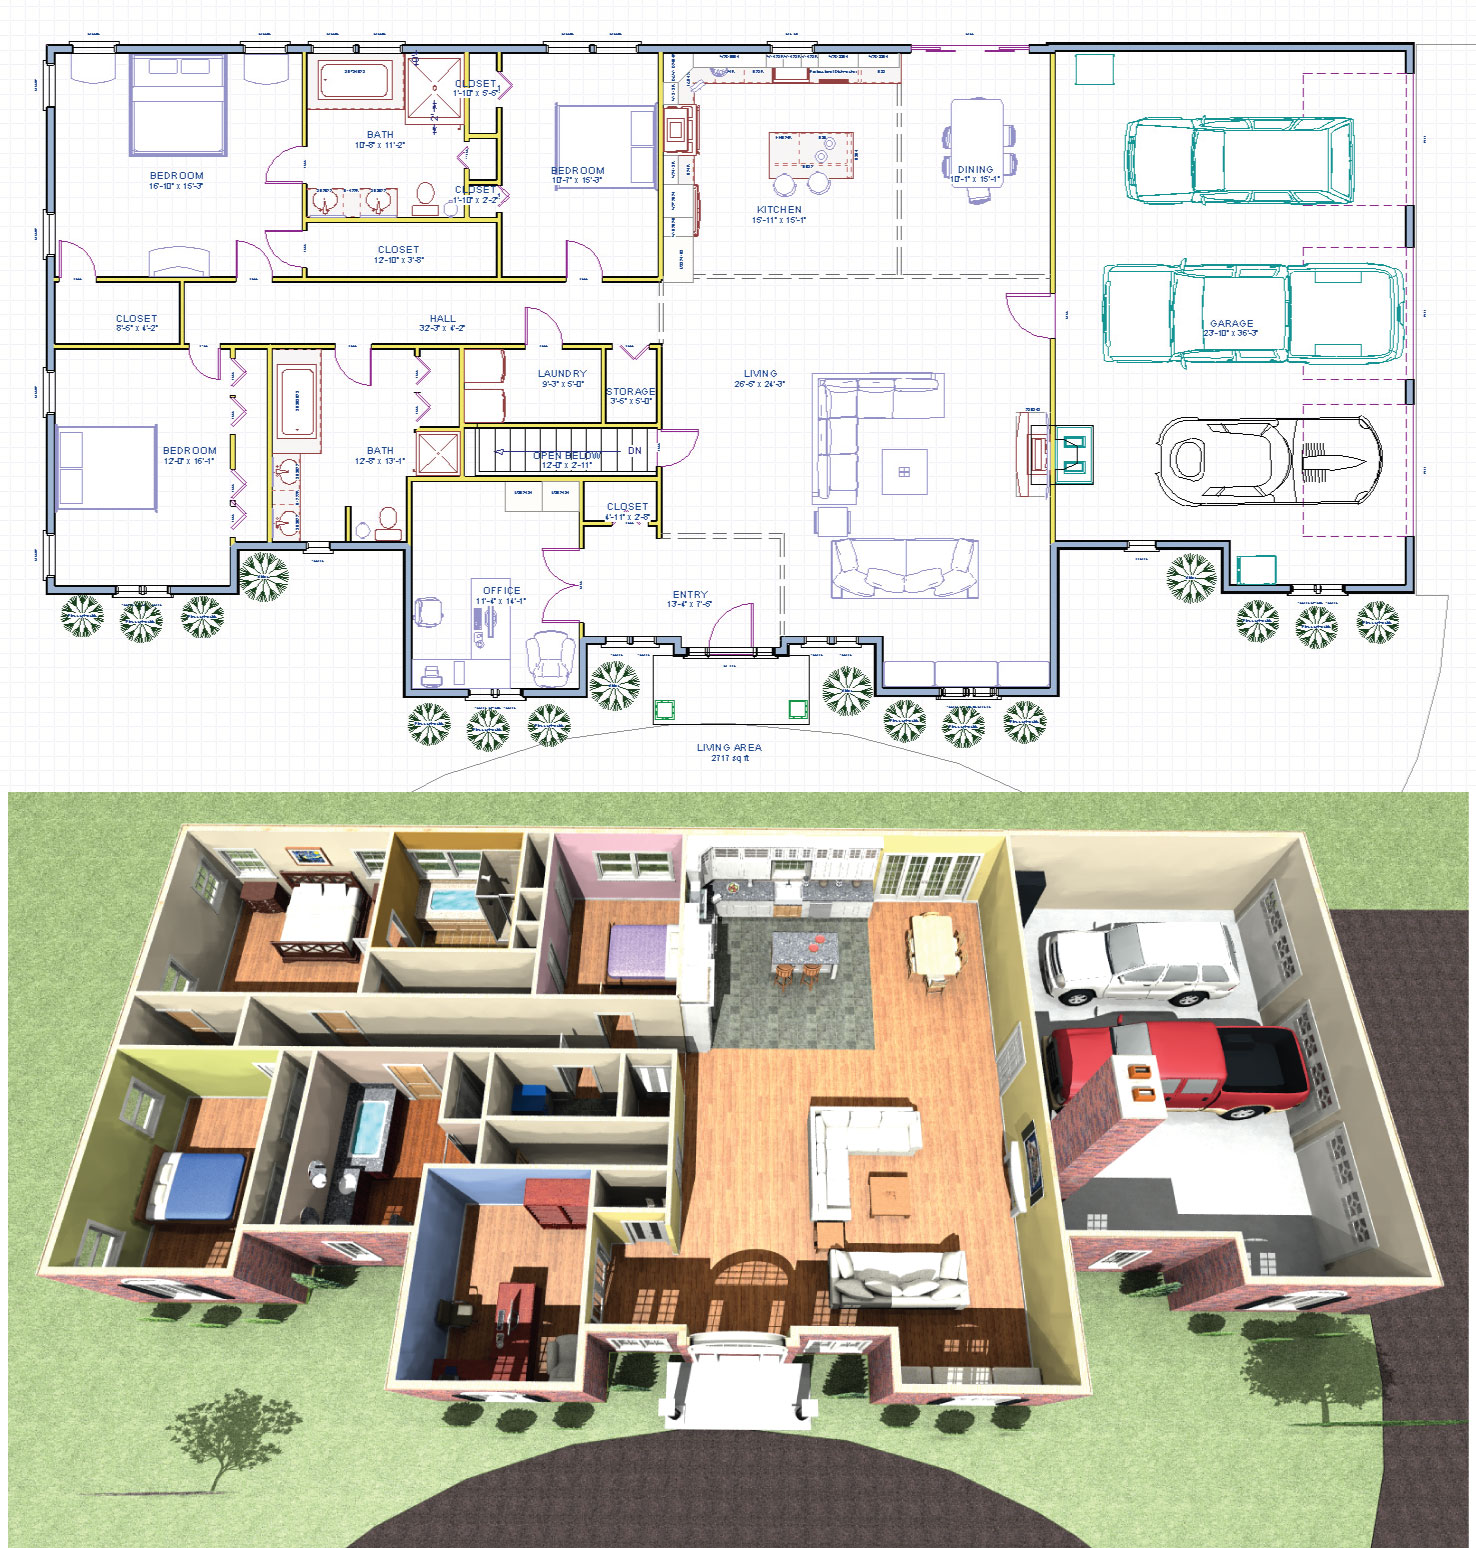 Marvelous Ranch Home Design Plans Gallery - Today designs ideas ...